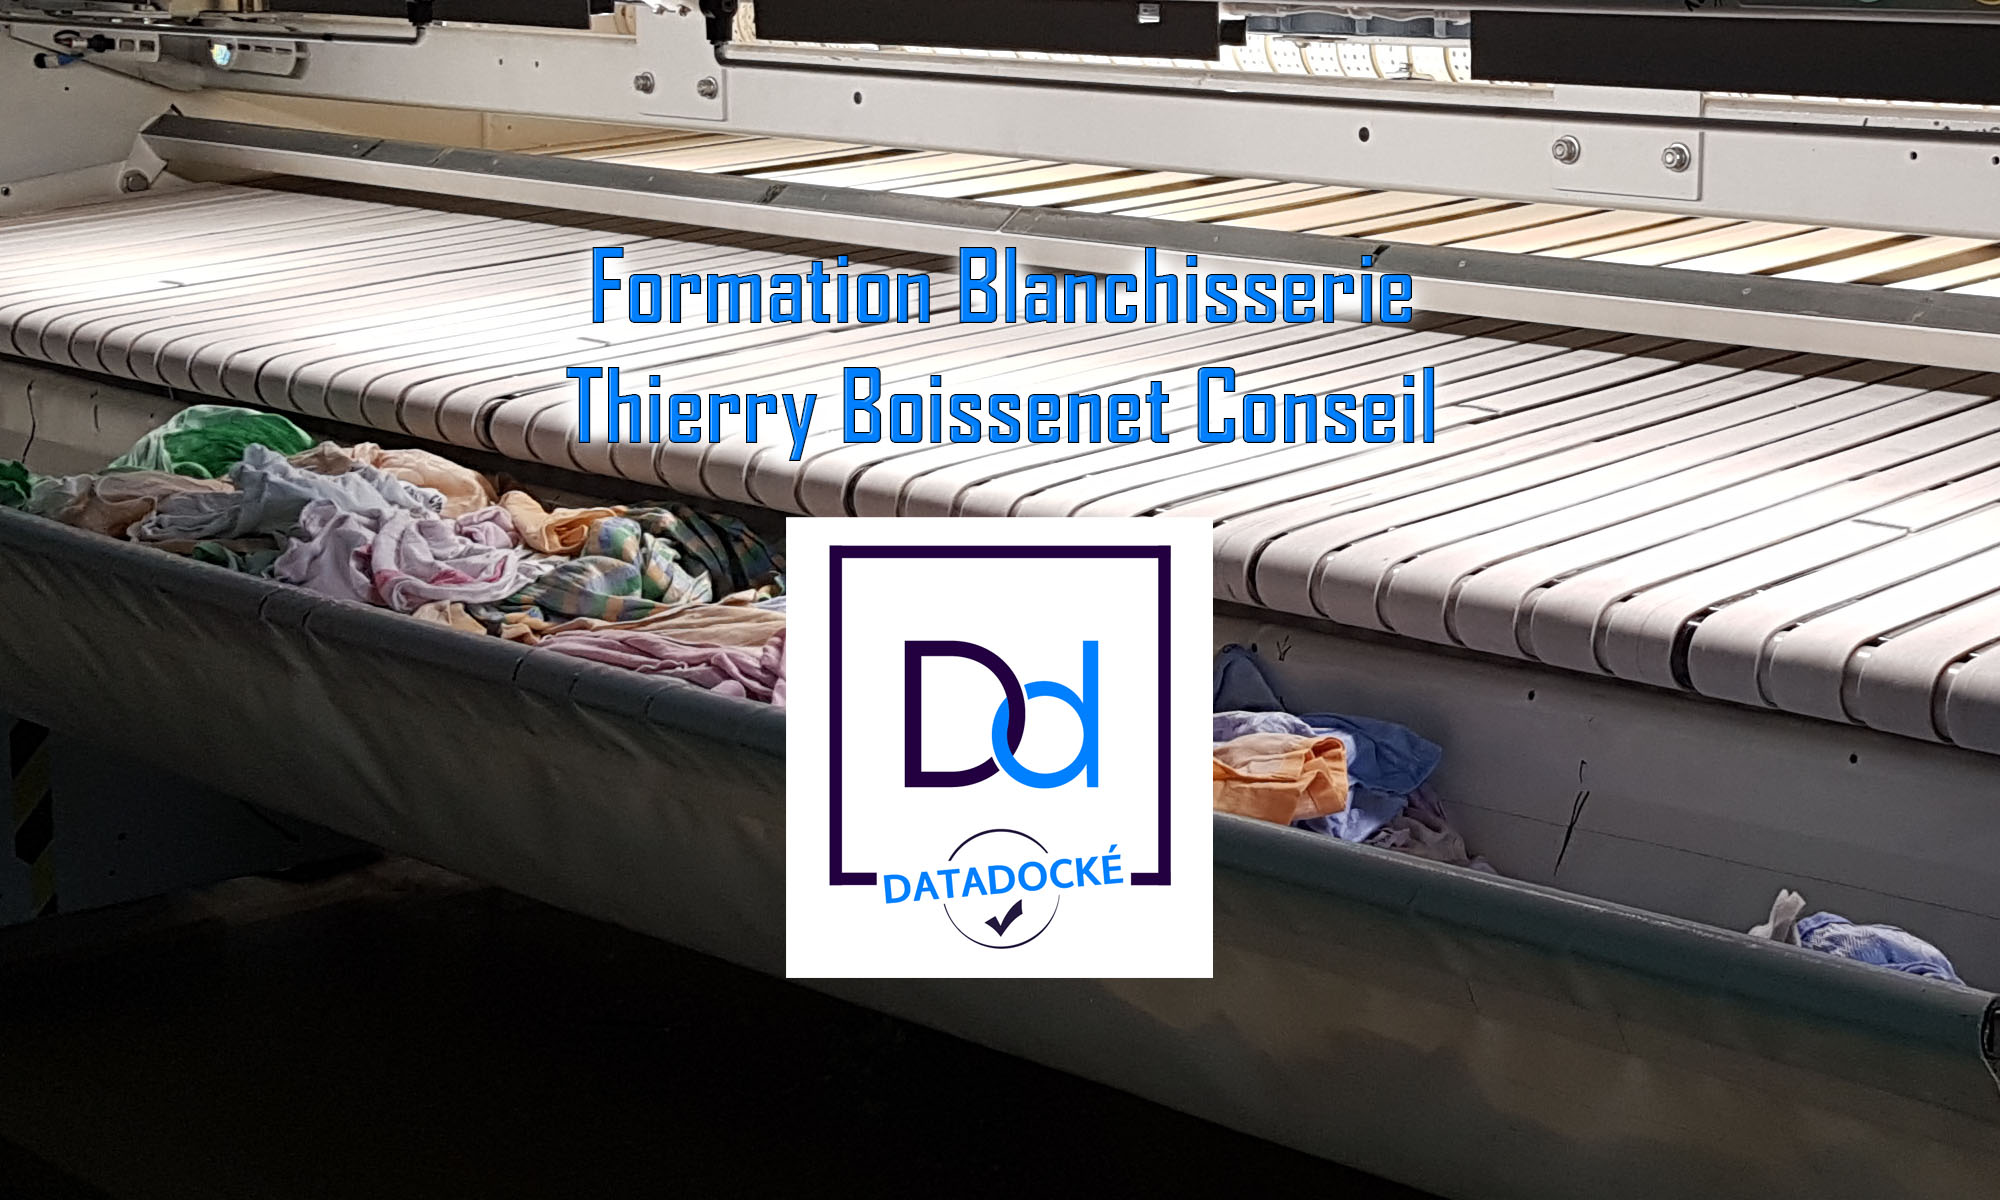 Formation Blanchisserie